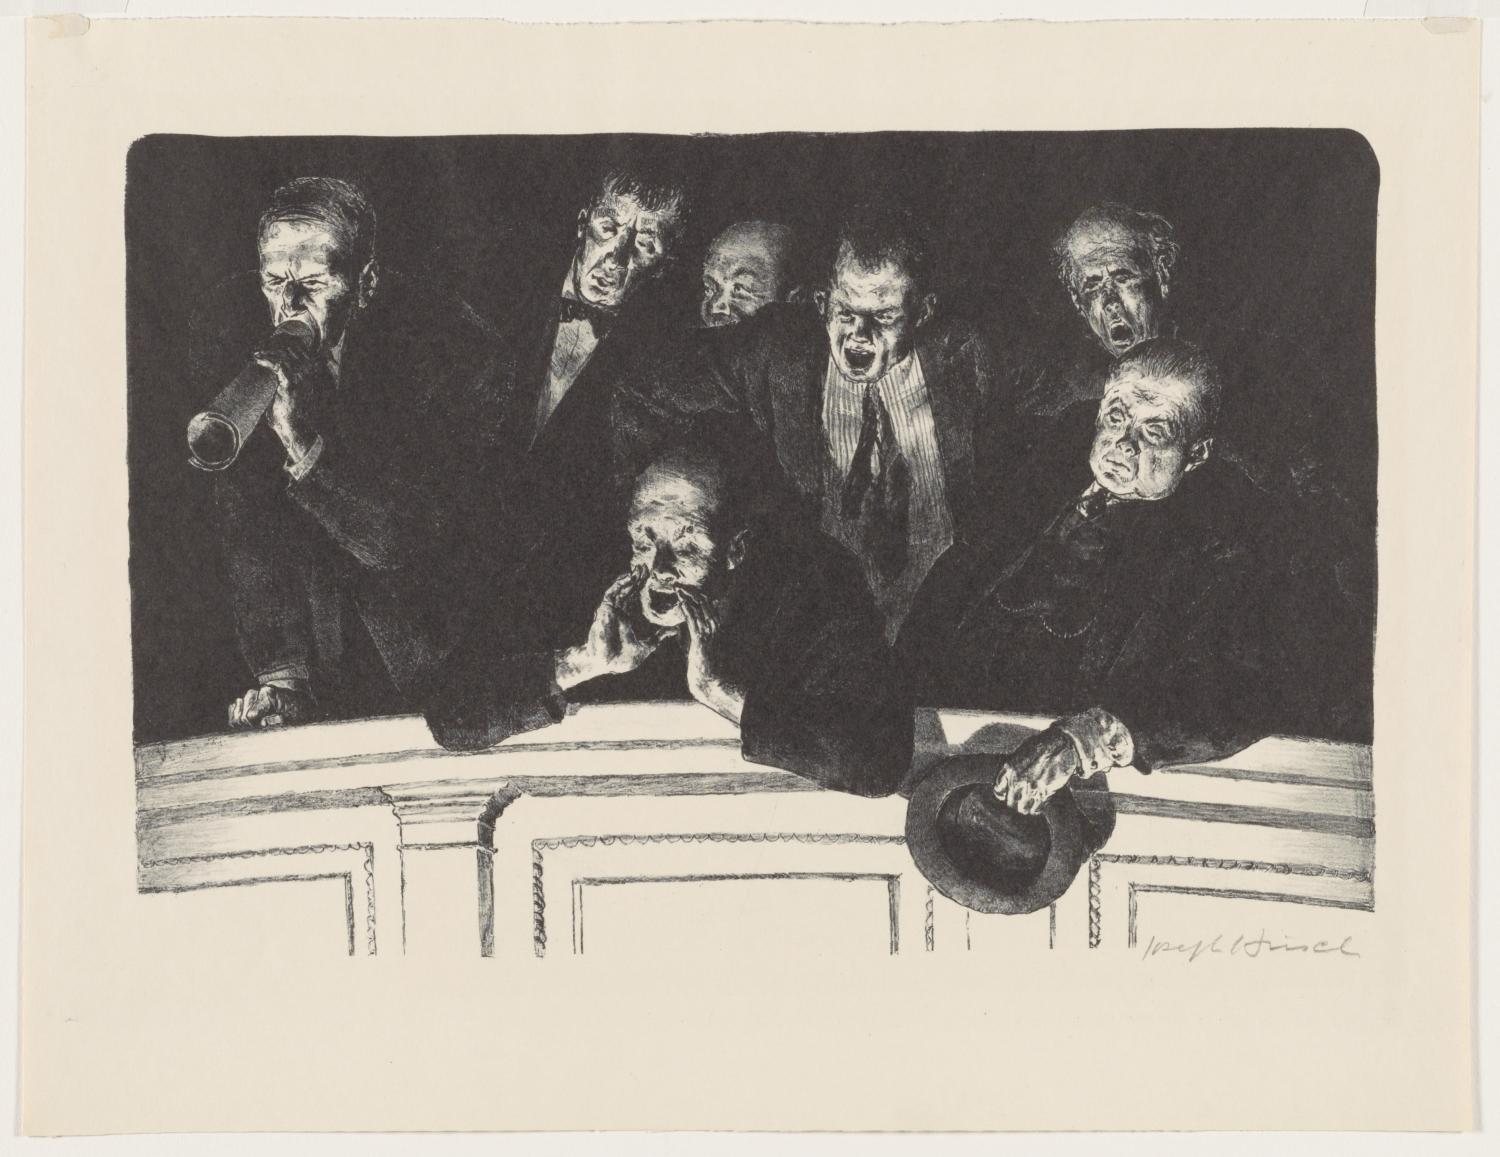 Black and white print with seven male figure in dark suits hanging over a balcony jeering and shouting. One whistles, one has his hands cupped to direct his shout, one waves his hat. Their faces have derisive expressions.